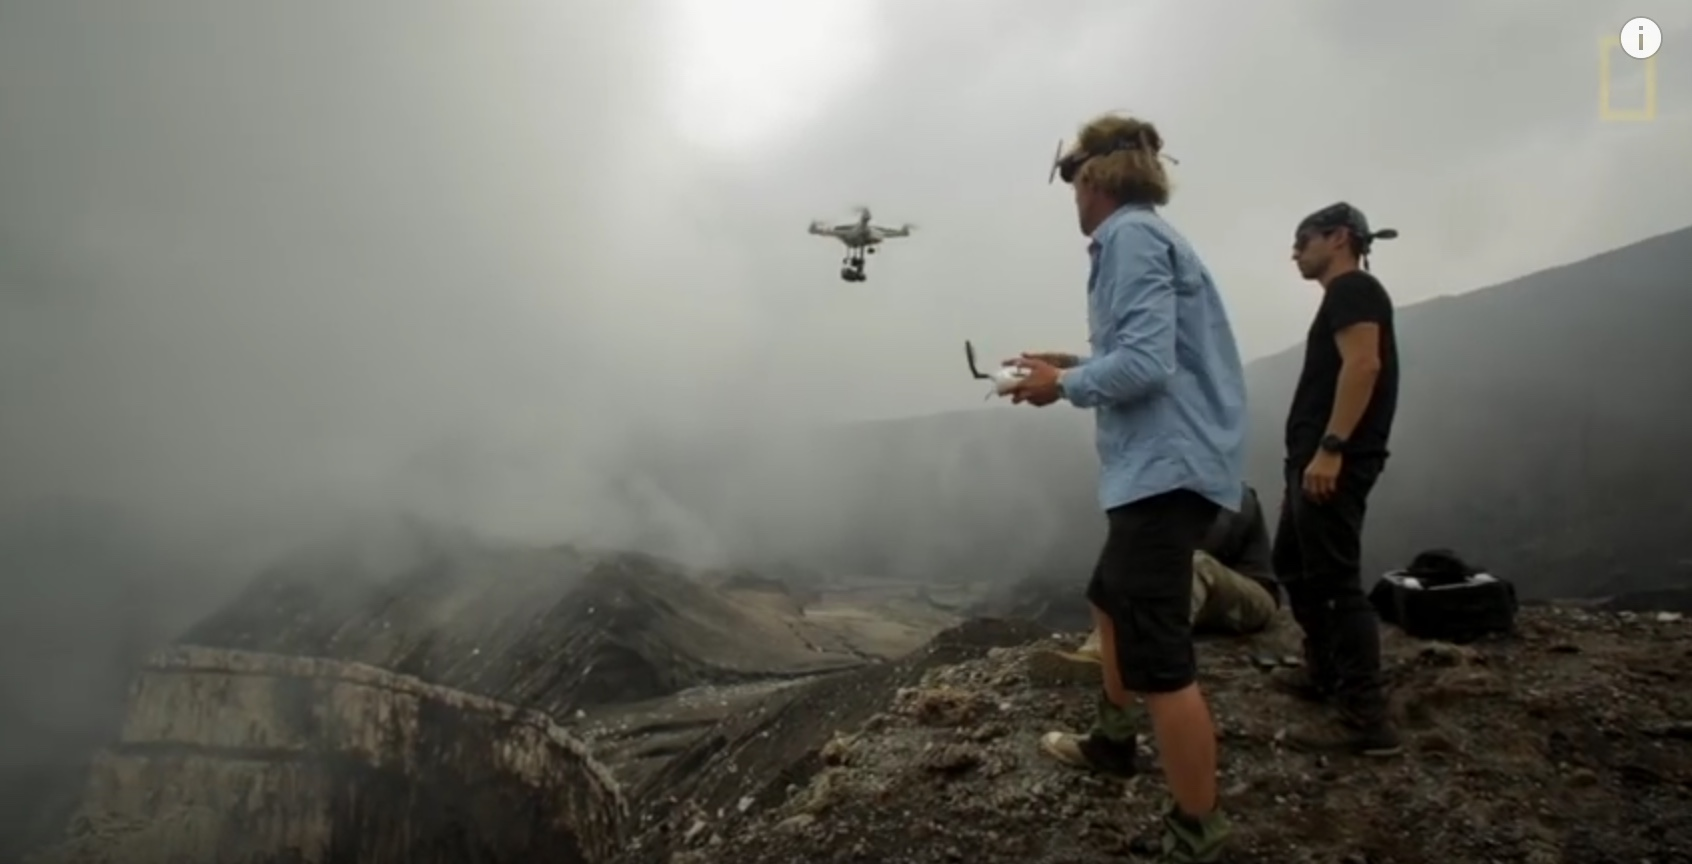 Drone taking off into the the volcano.